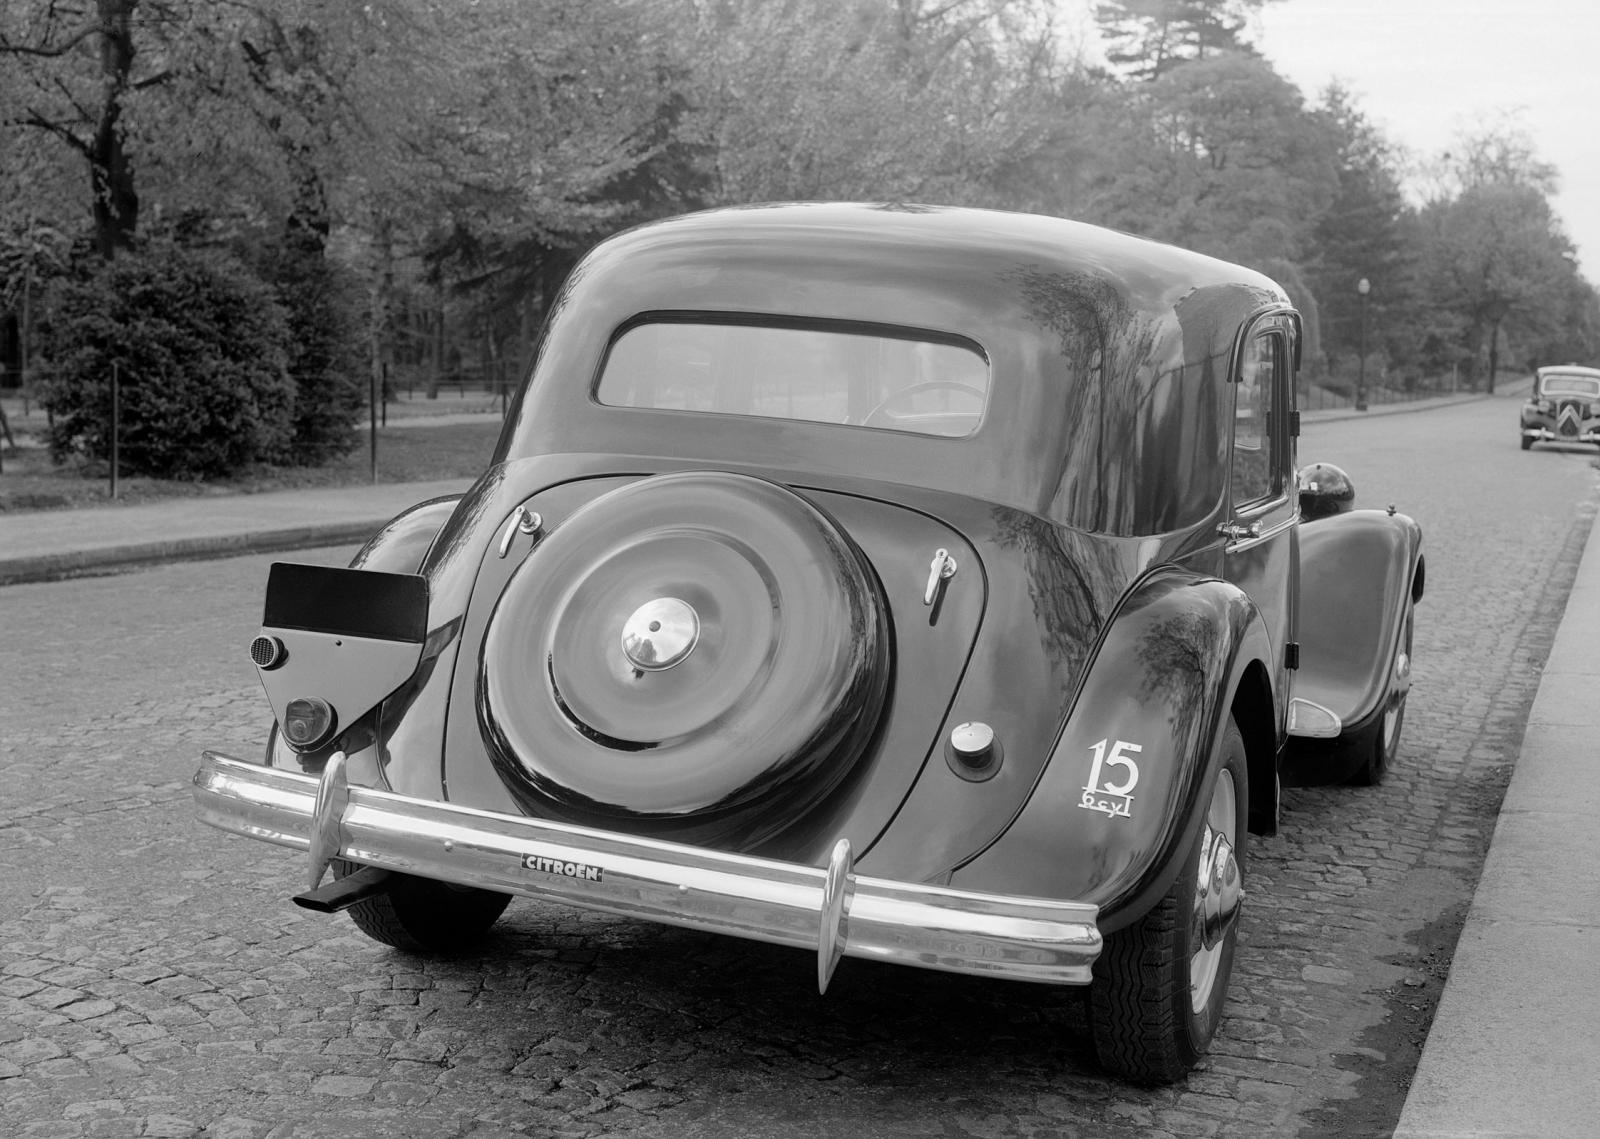 Traction 15 SIX G, 1939.